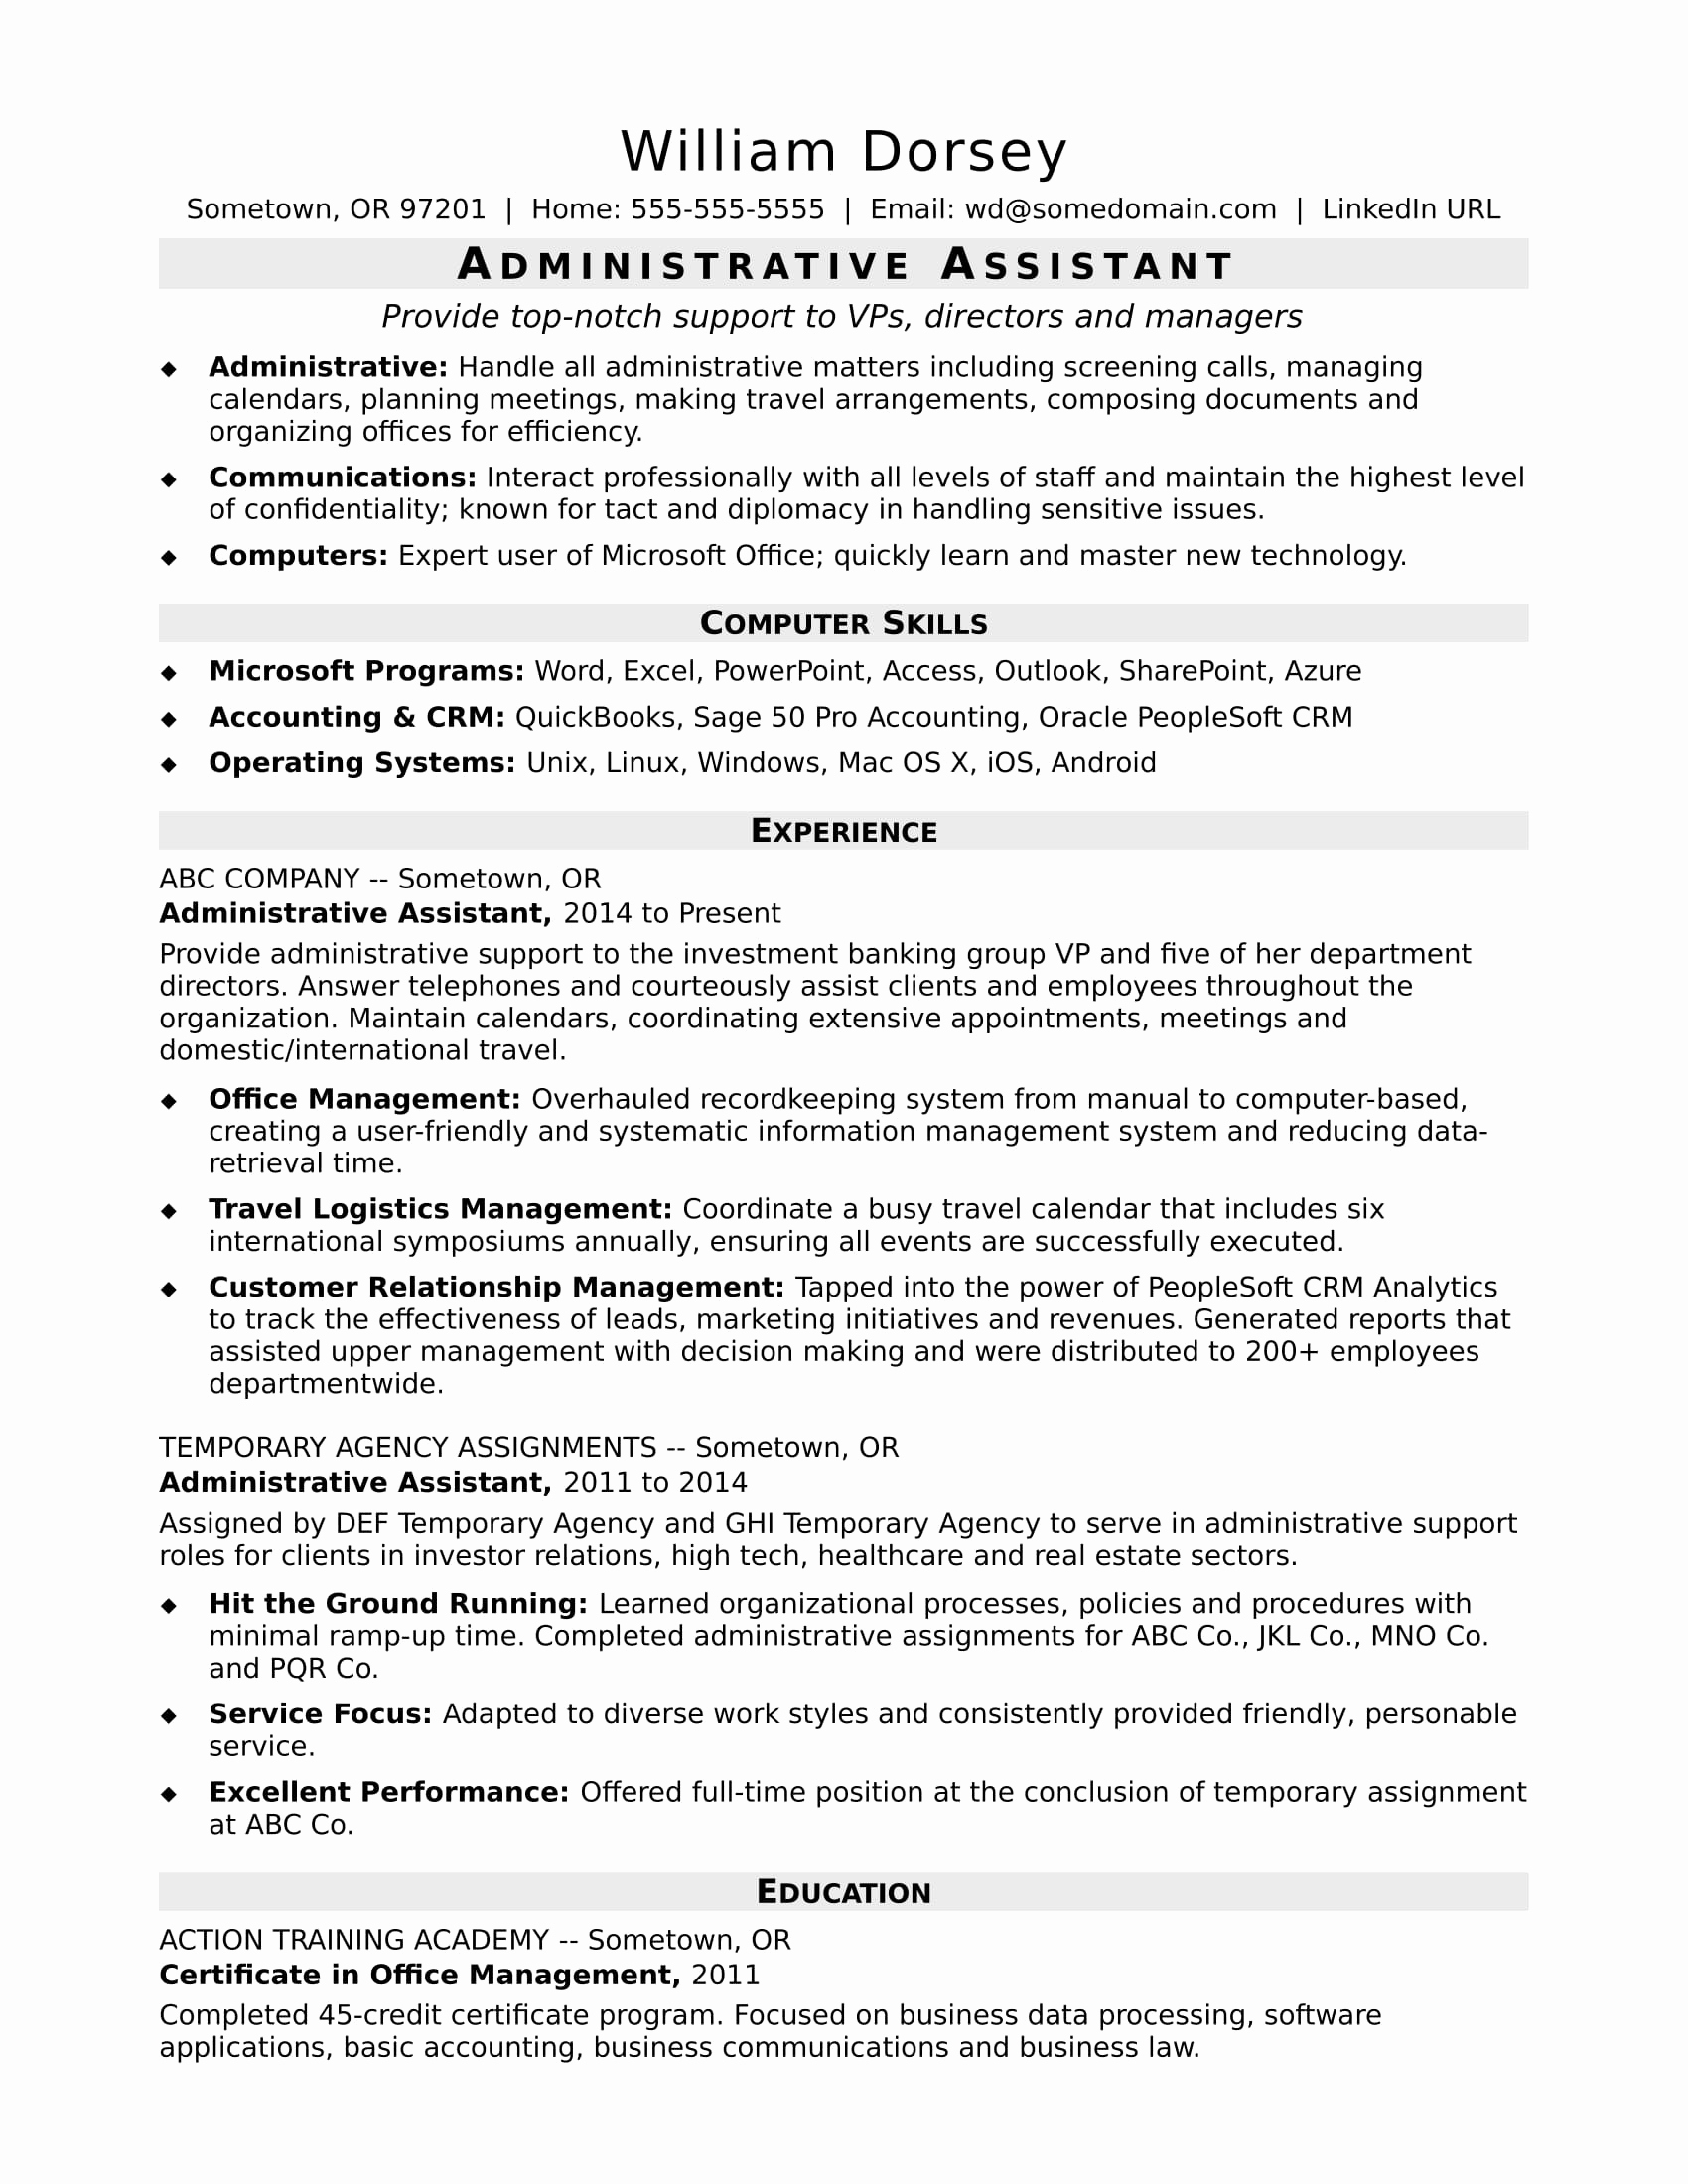 Executive Administrative assistant Resume - Entry Level Administrative assistant Resume Beautiful Free